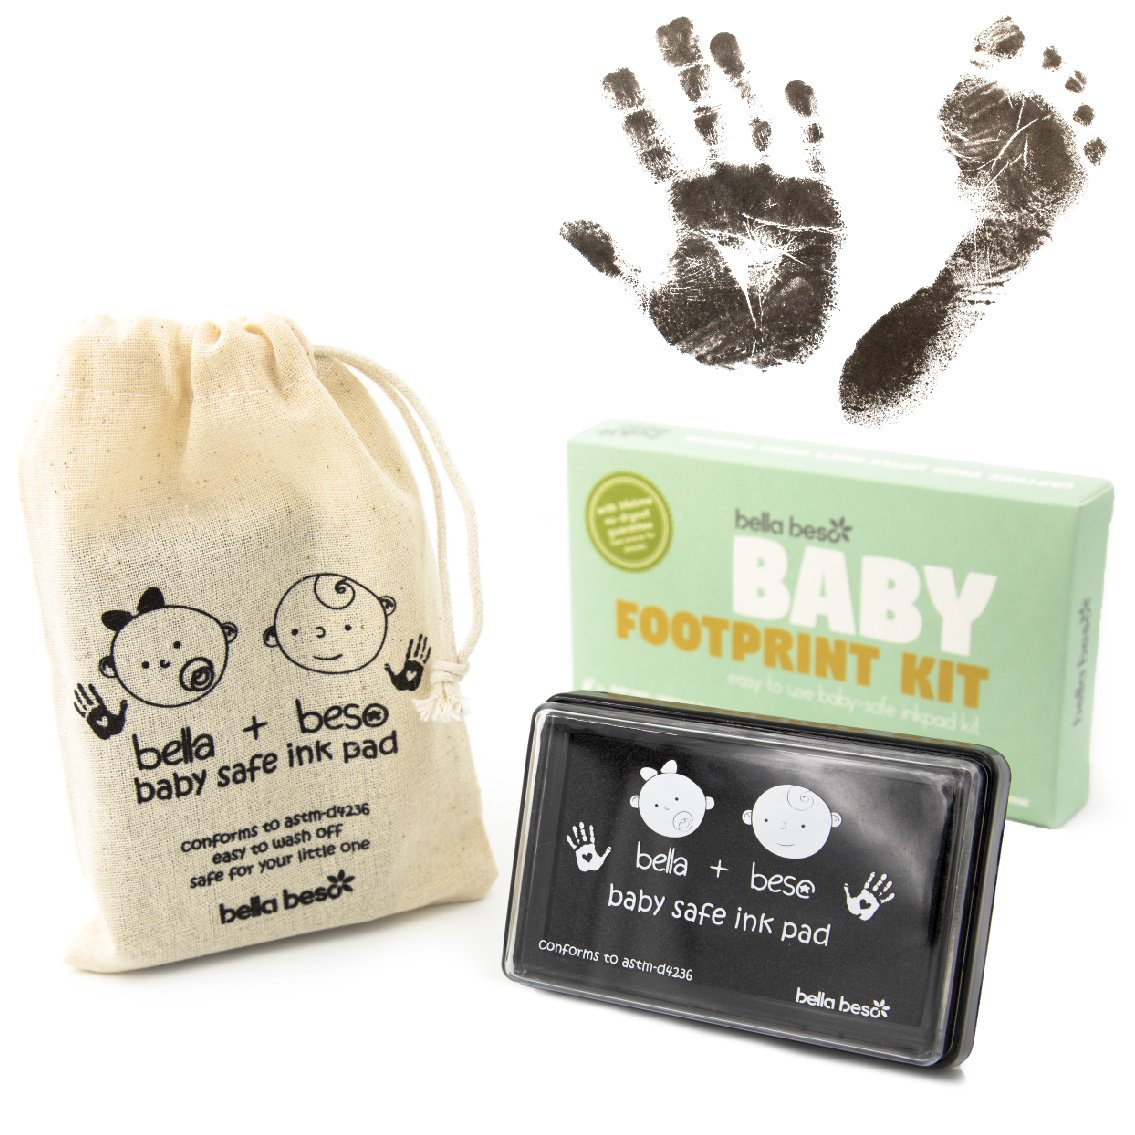 Baby Footprint Kit - Easy Clean Baby Safe Black Ink Pad for Baby Hand Prints and Footprints with Lifetime inkpad Guarantee Bella Beso